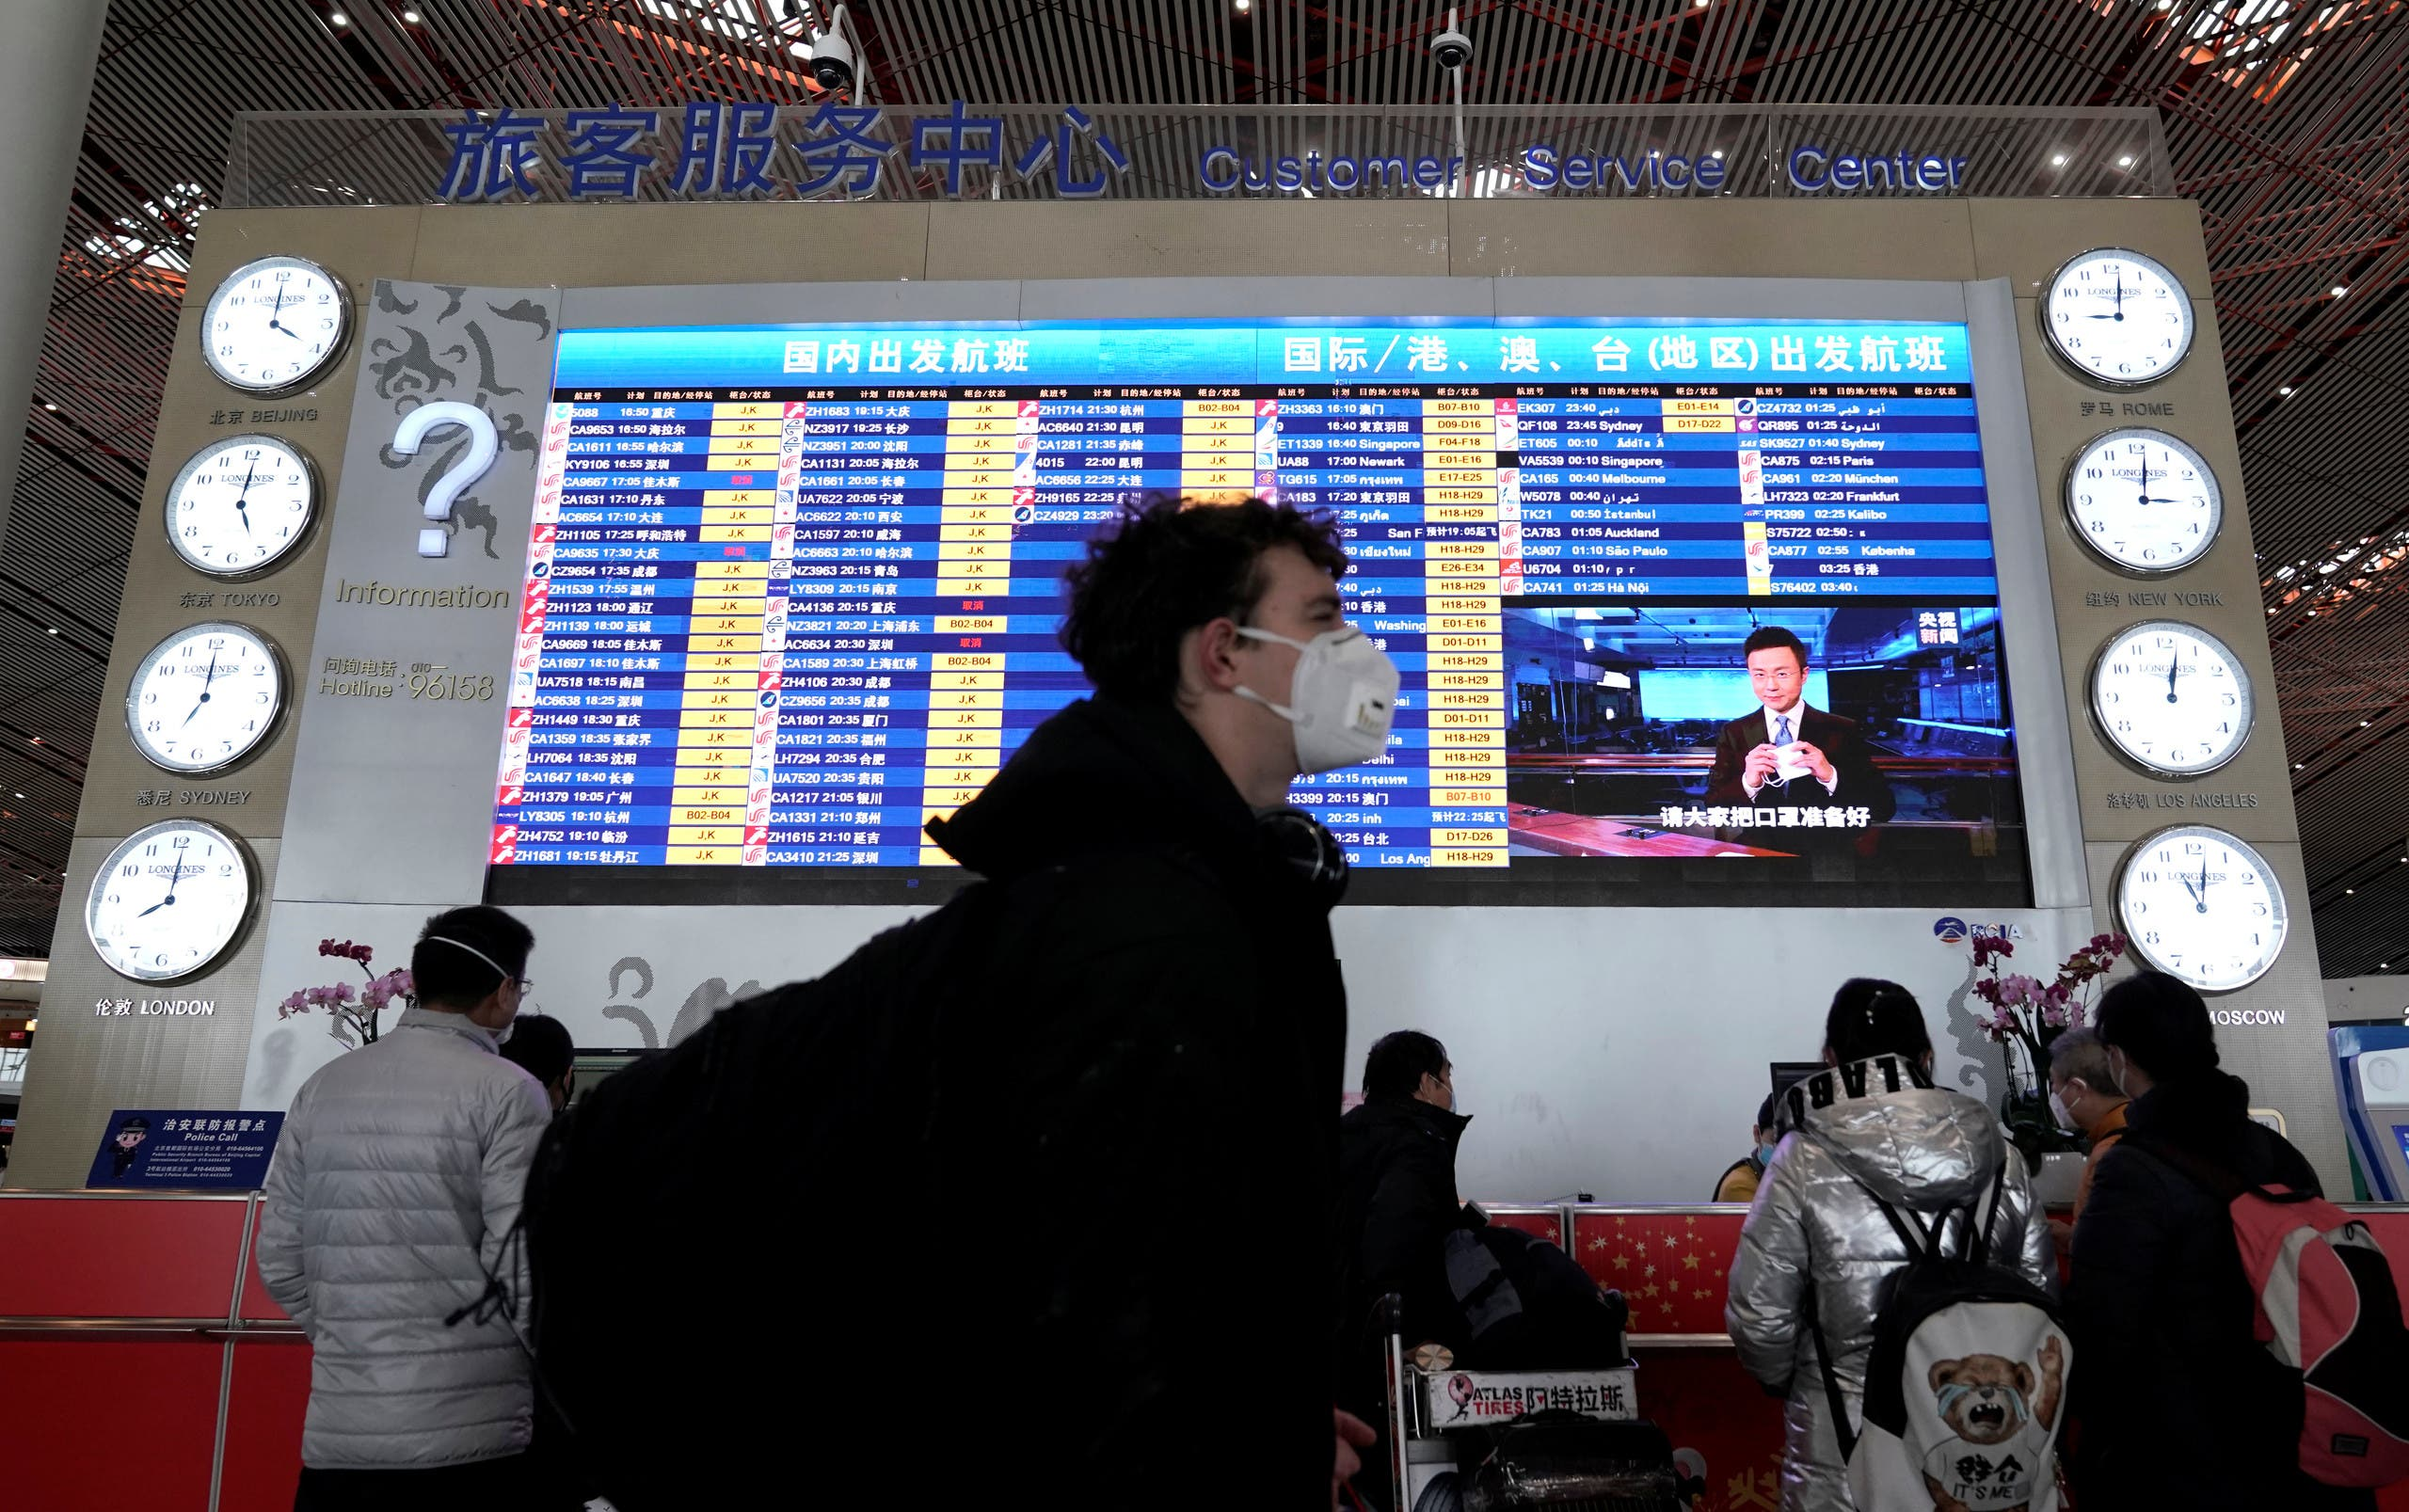 A foreign traveller wearing a mask walks past a departures information board at Beijing International Airport in Beijing, China as the country is hit by an outbreak of the new coronavirus, February 1, 2020. (Reuters)